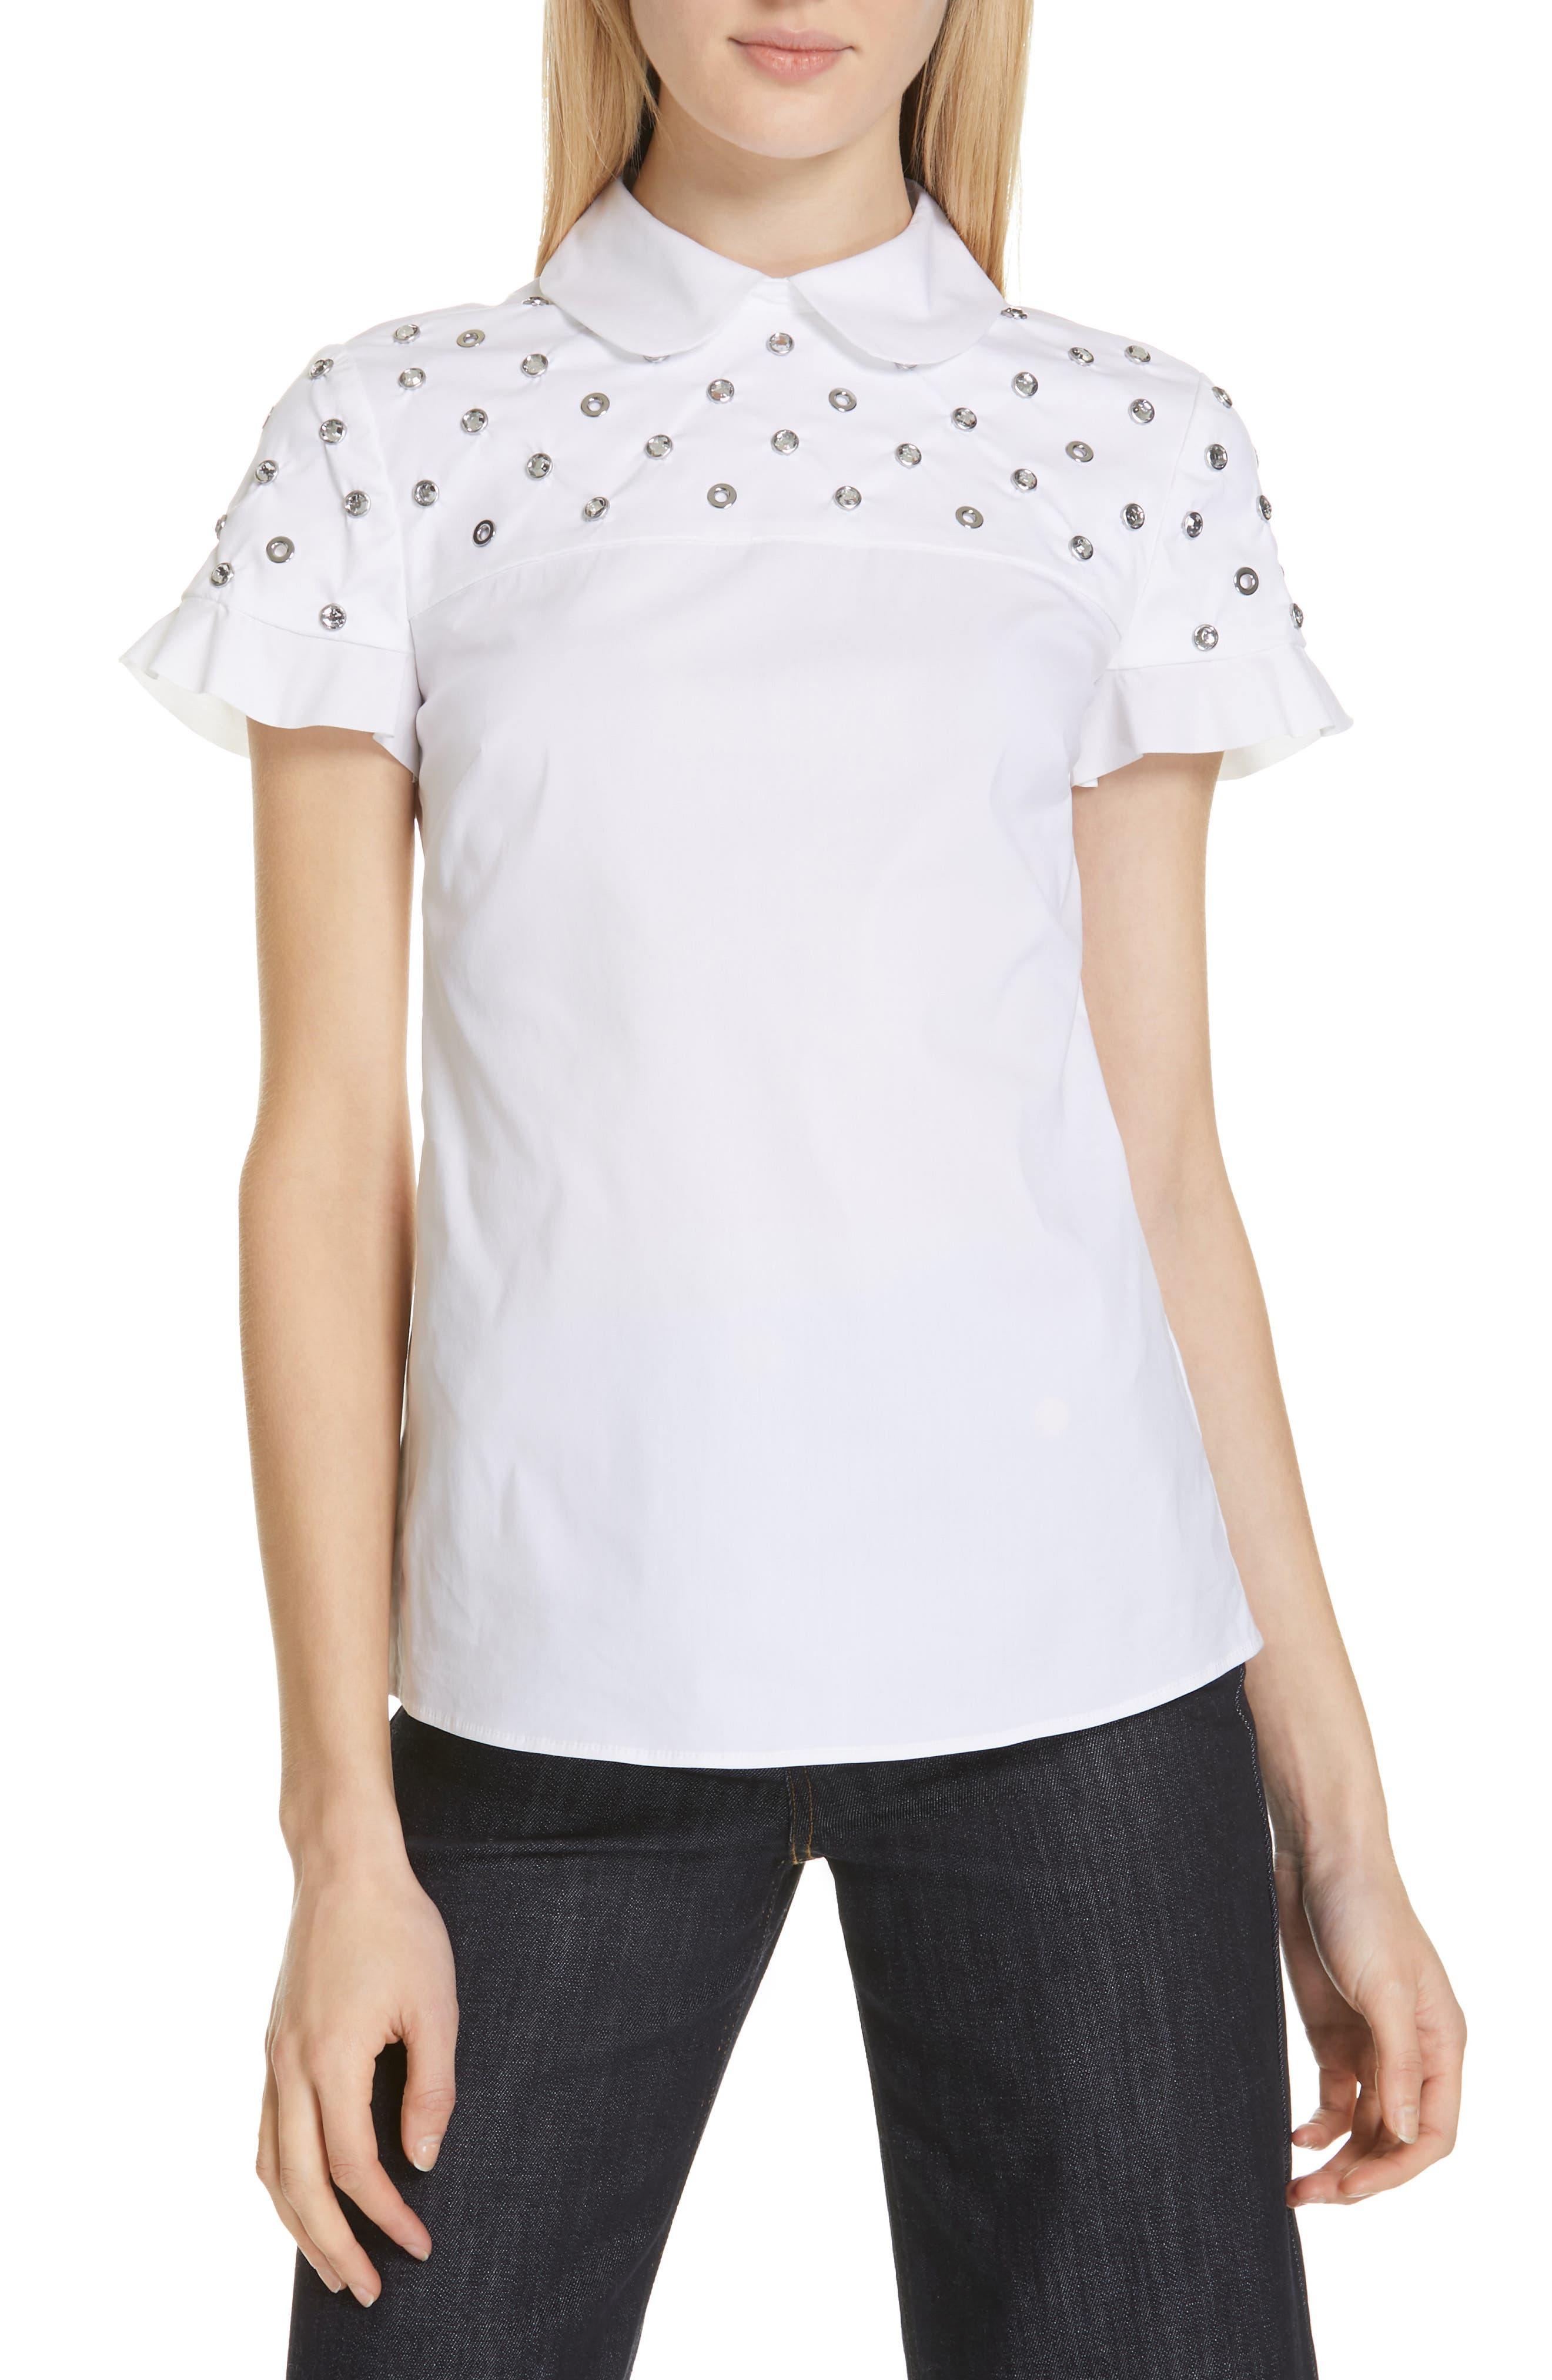 RED VALENTINO, Grommet & Crystal Ruffle Sleeve Top, Main thumbnail 1, color, BIANCO OTTICO